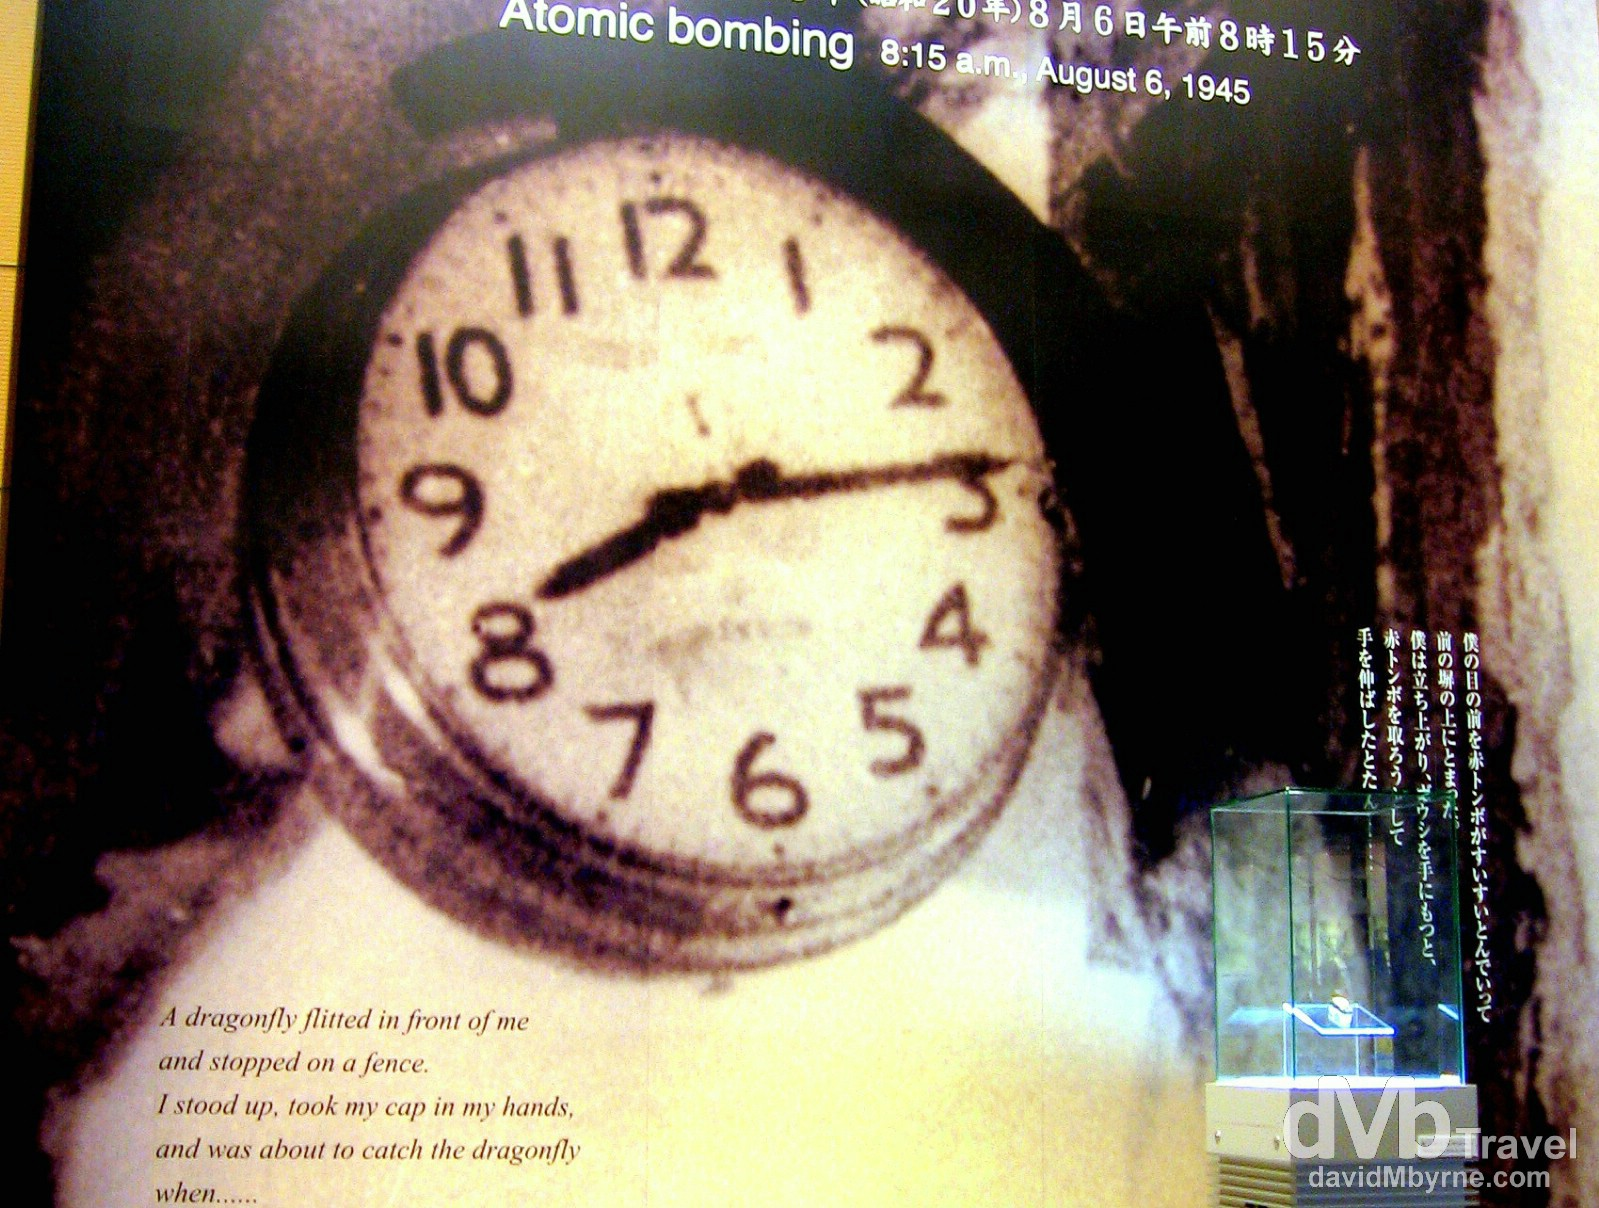 A display in the Hiroshima Peace Memorial Museum, Hiroshima, Honshu, Japan. July 22nd, 2005.